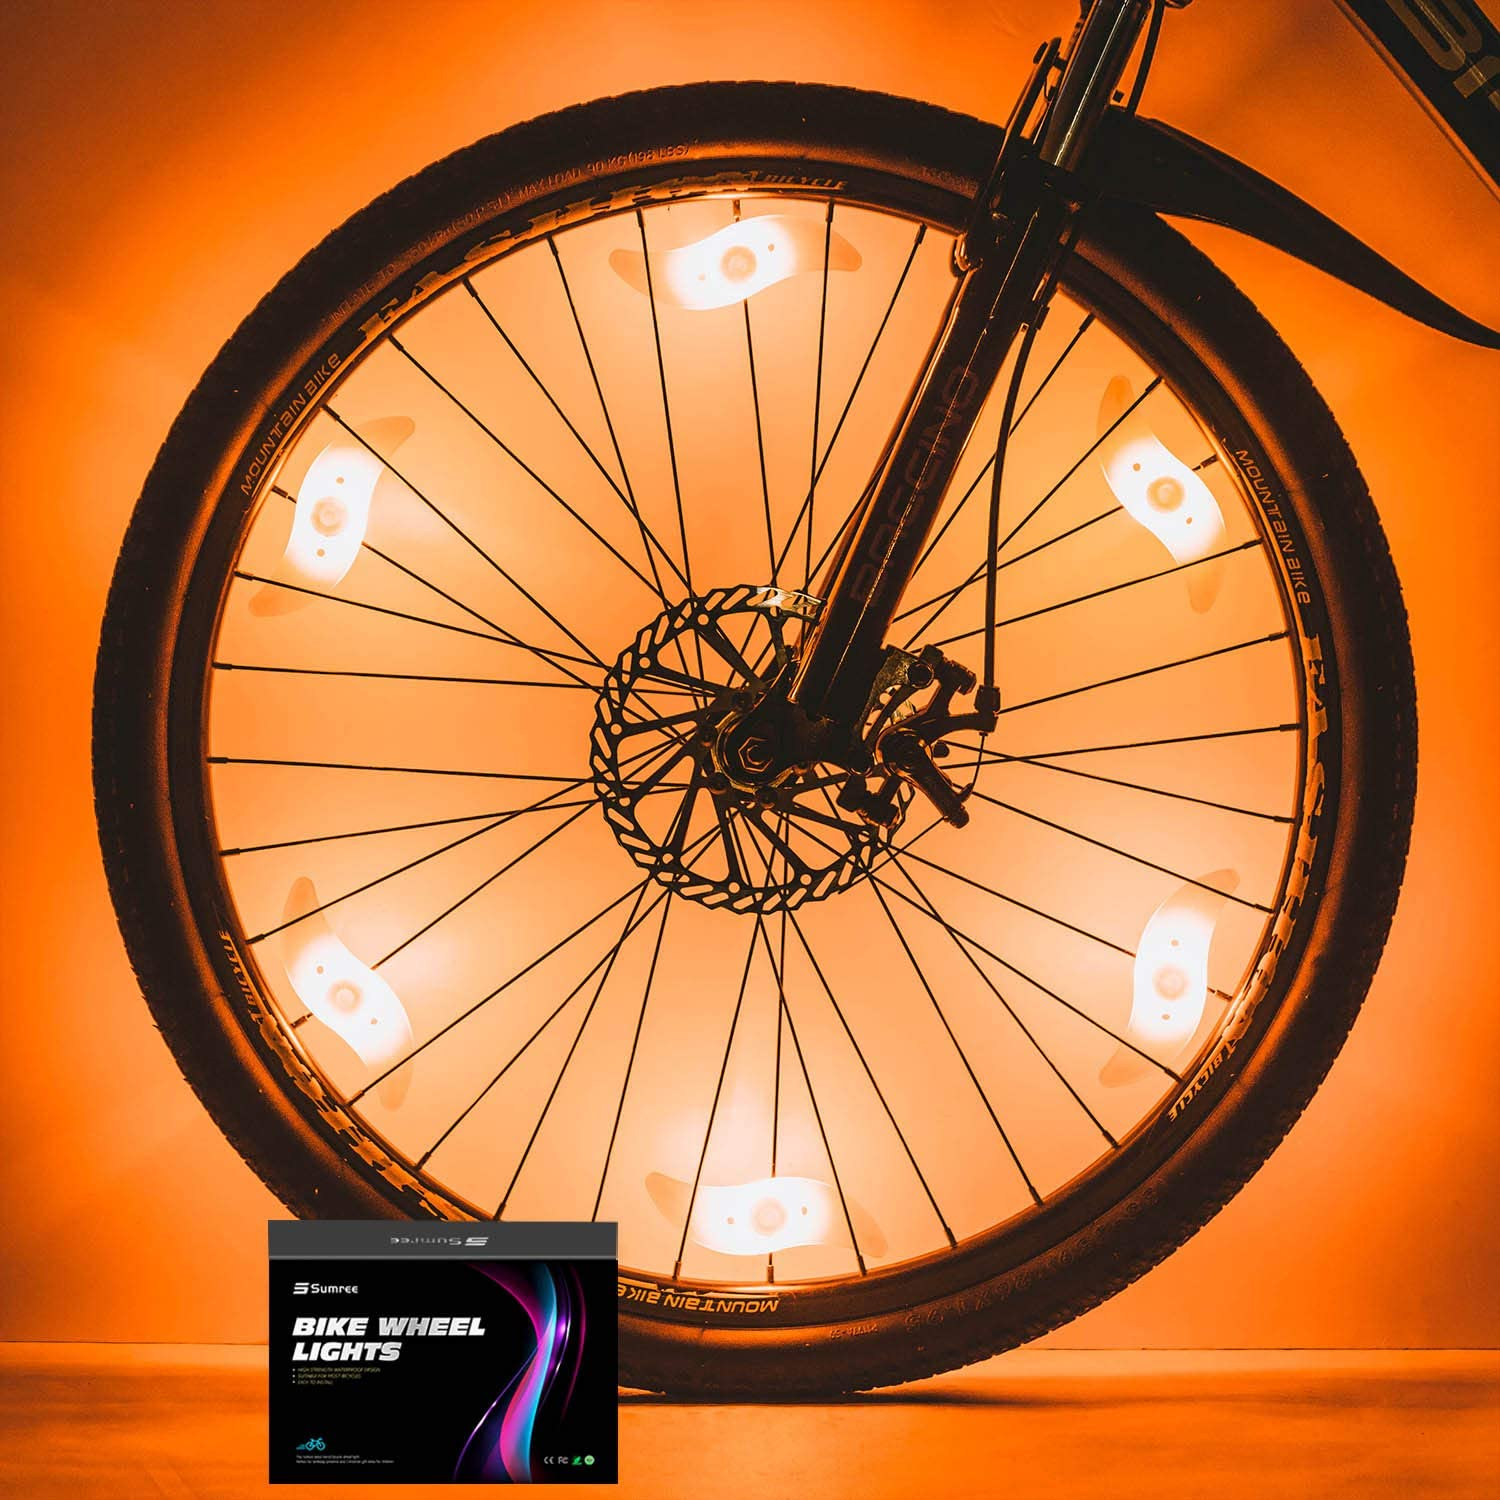 Batteries Included and 6 Extra Batteries Sumree Bike Spoke Lights Bike Wheel Lights for Cycling Bicycle Decoration 6 Pack